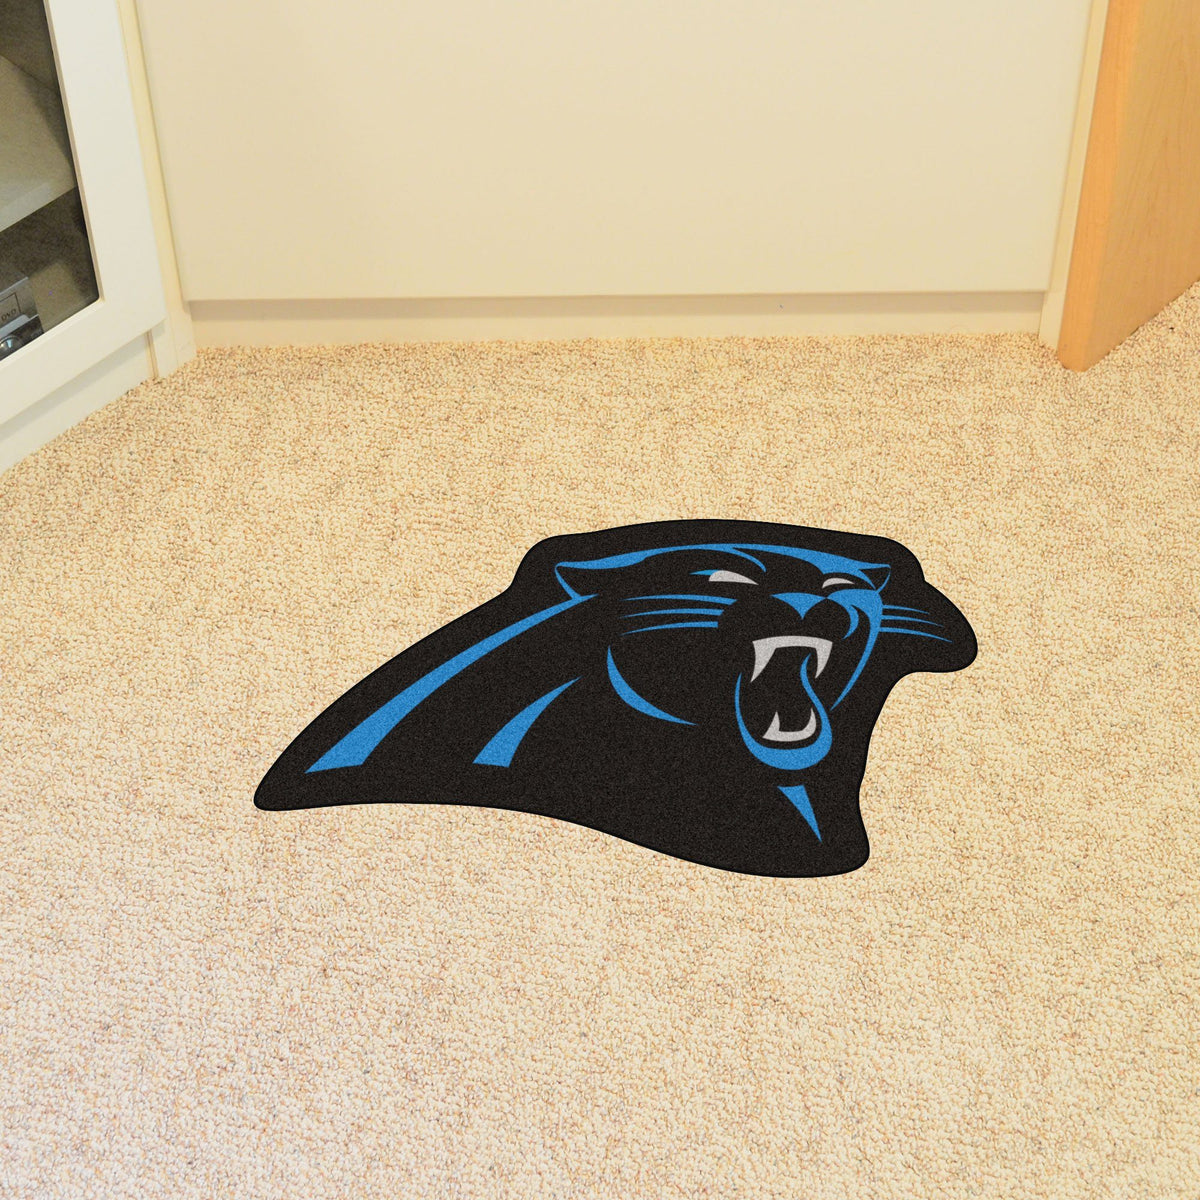 "NFL - Mascot Mat, 36"" x 34.8"" NFL Mats, Custom Shape Rugs, Mascot Mat, NFL, Home Fan Mats Carolina Panthers"